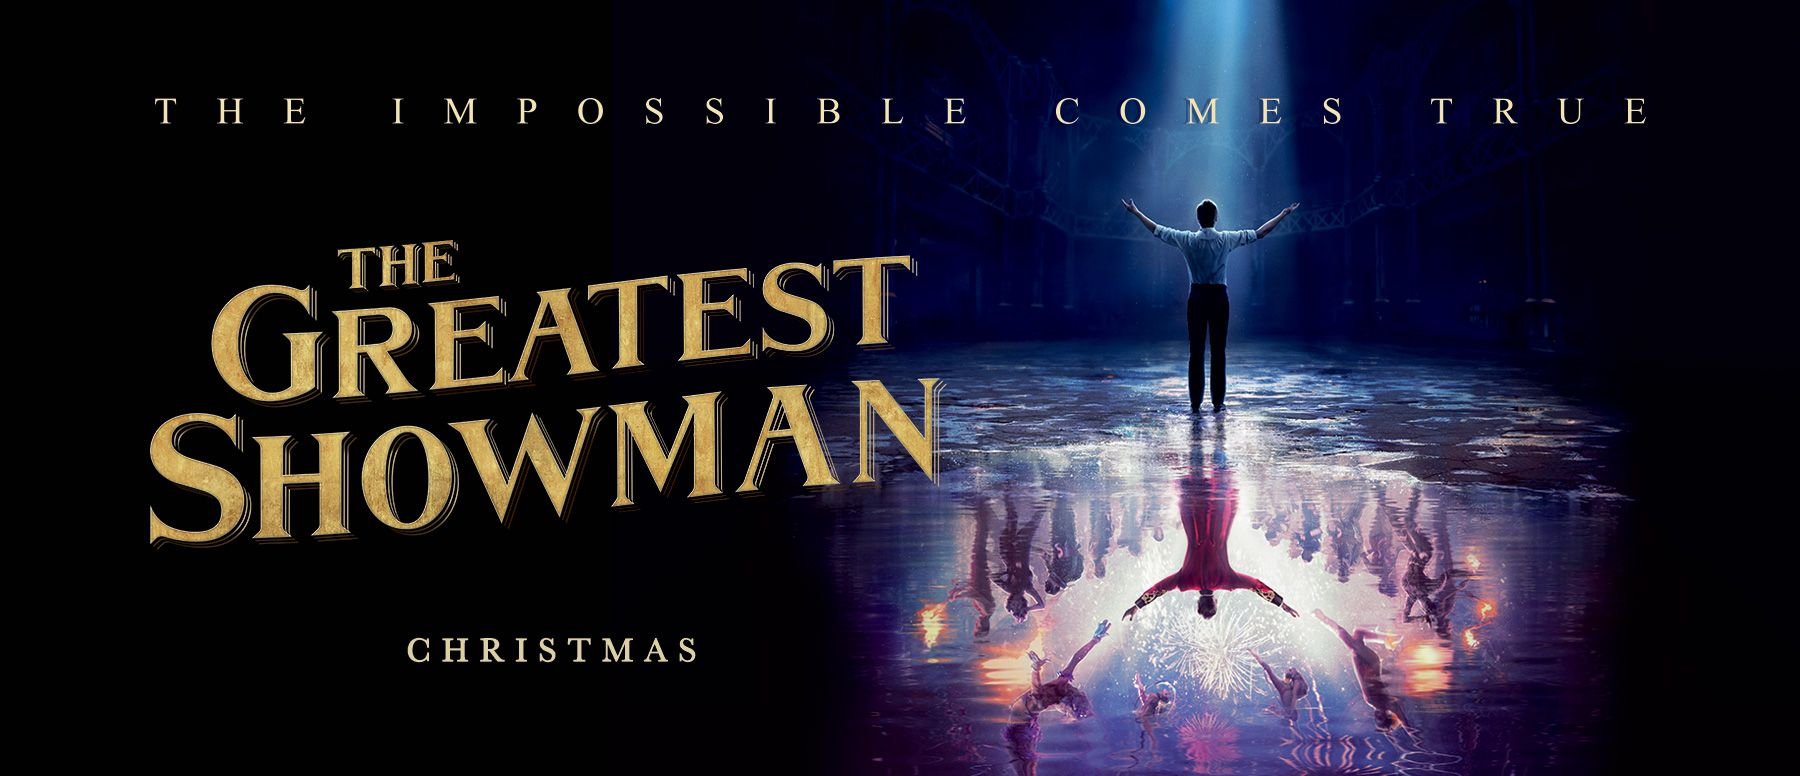 The Greatest Showman Is Back With Its Mind-blowing Second Trailer